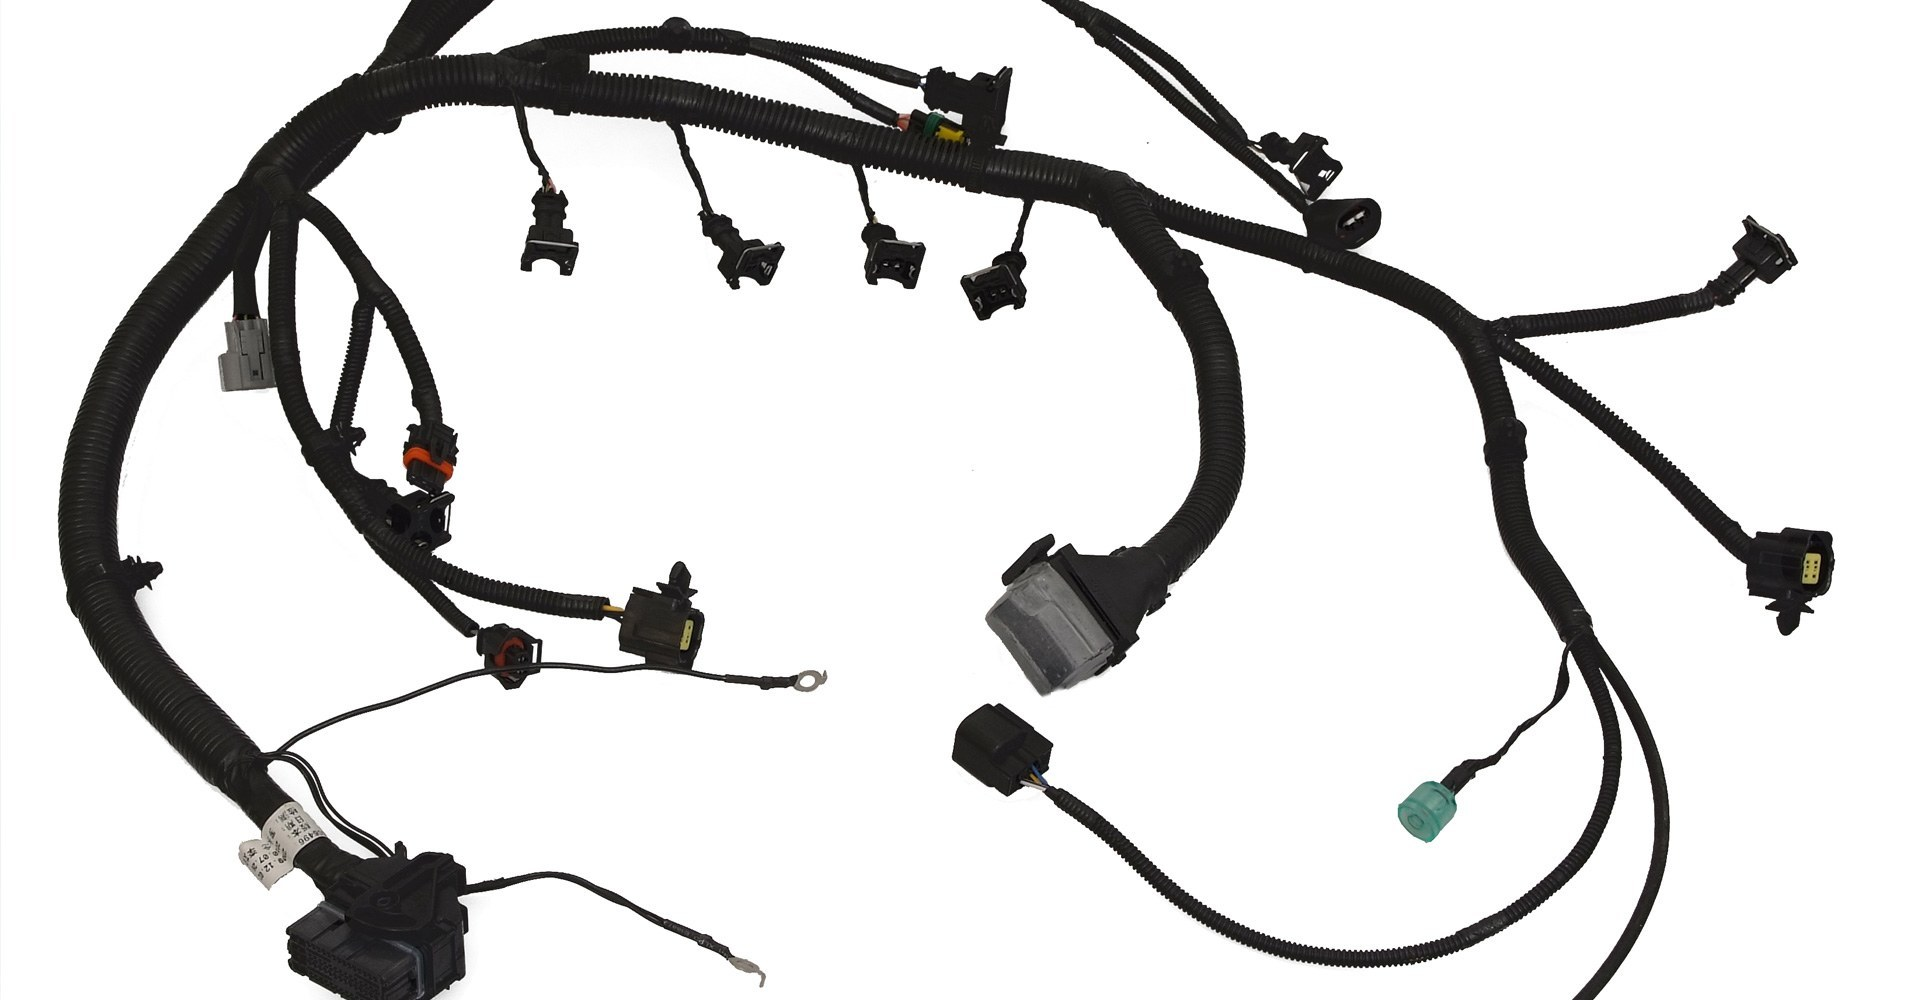 wireharness automotive wire harness products lorom automotive wiring harness at mifinder.co